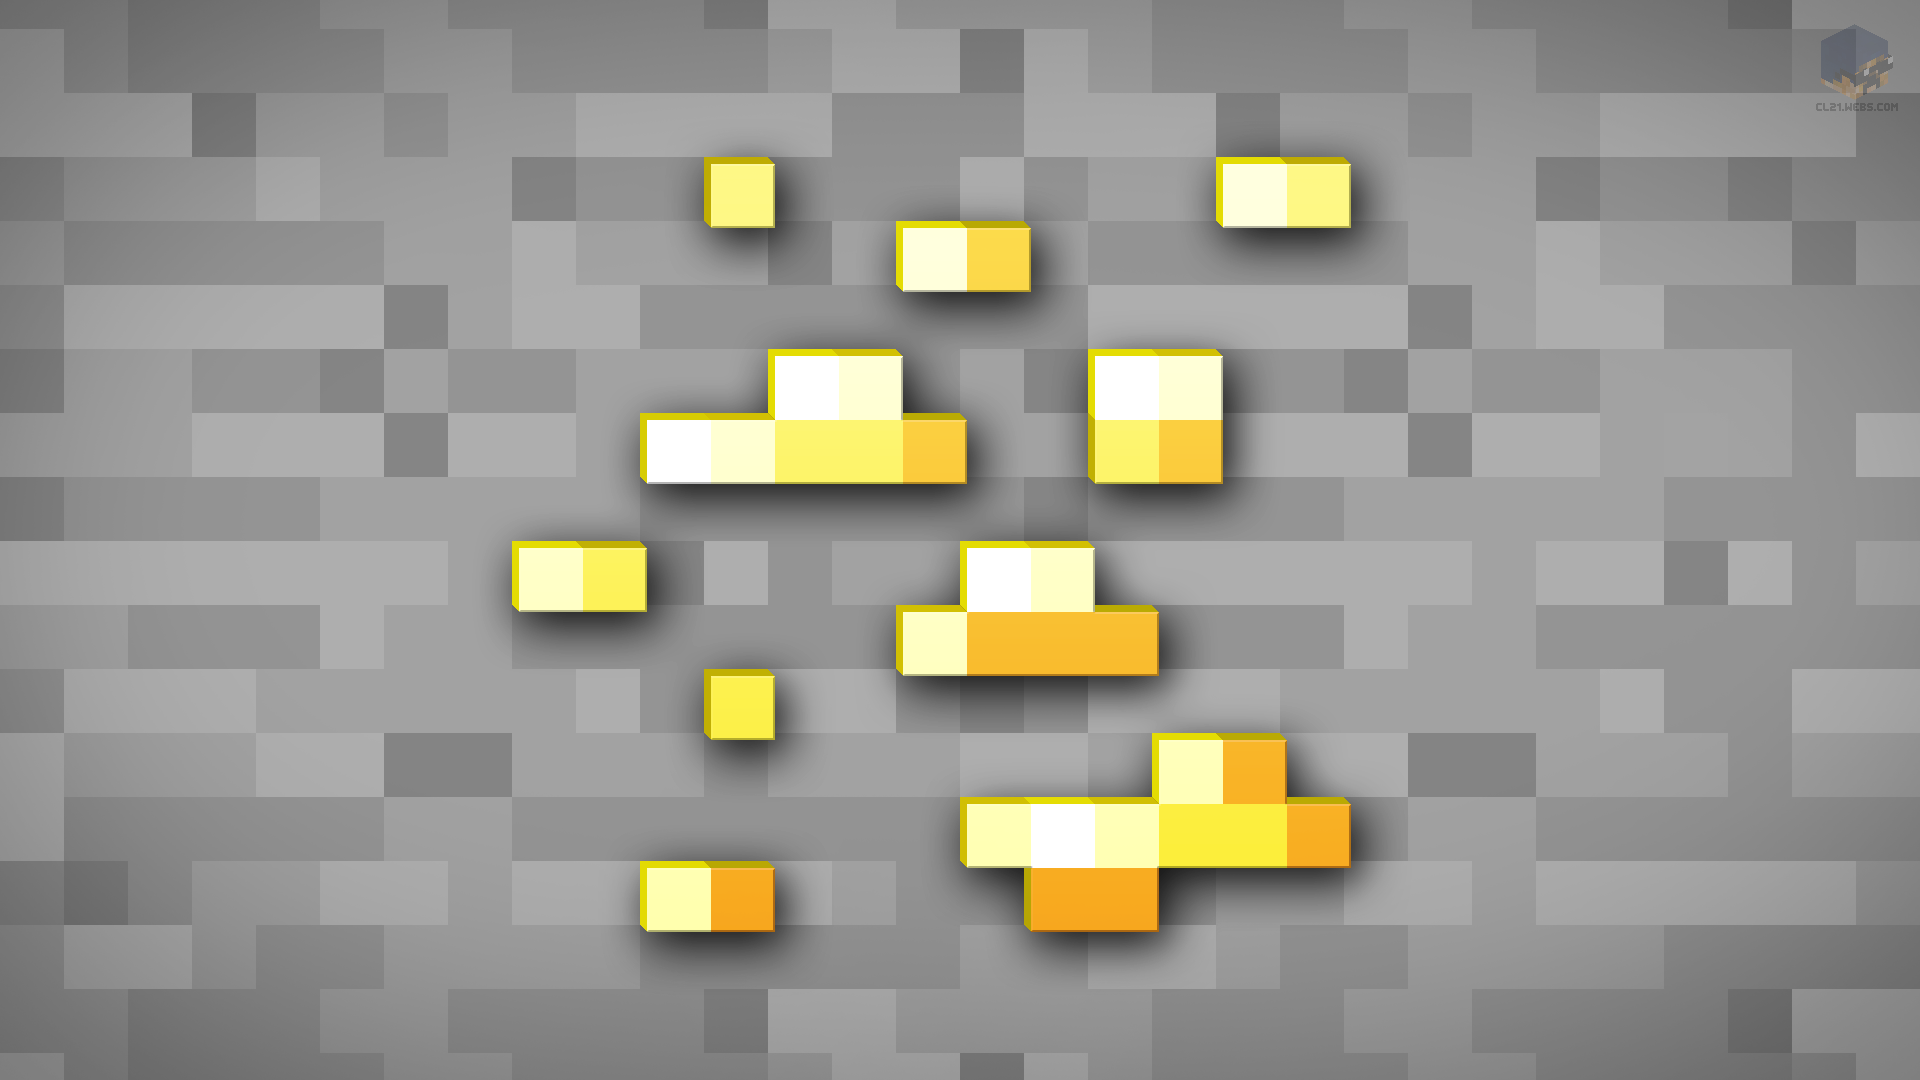 MineCraft Shaded Gold Ore Wallpaper by ChrisL21 on DeviantArt